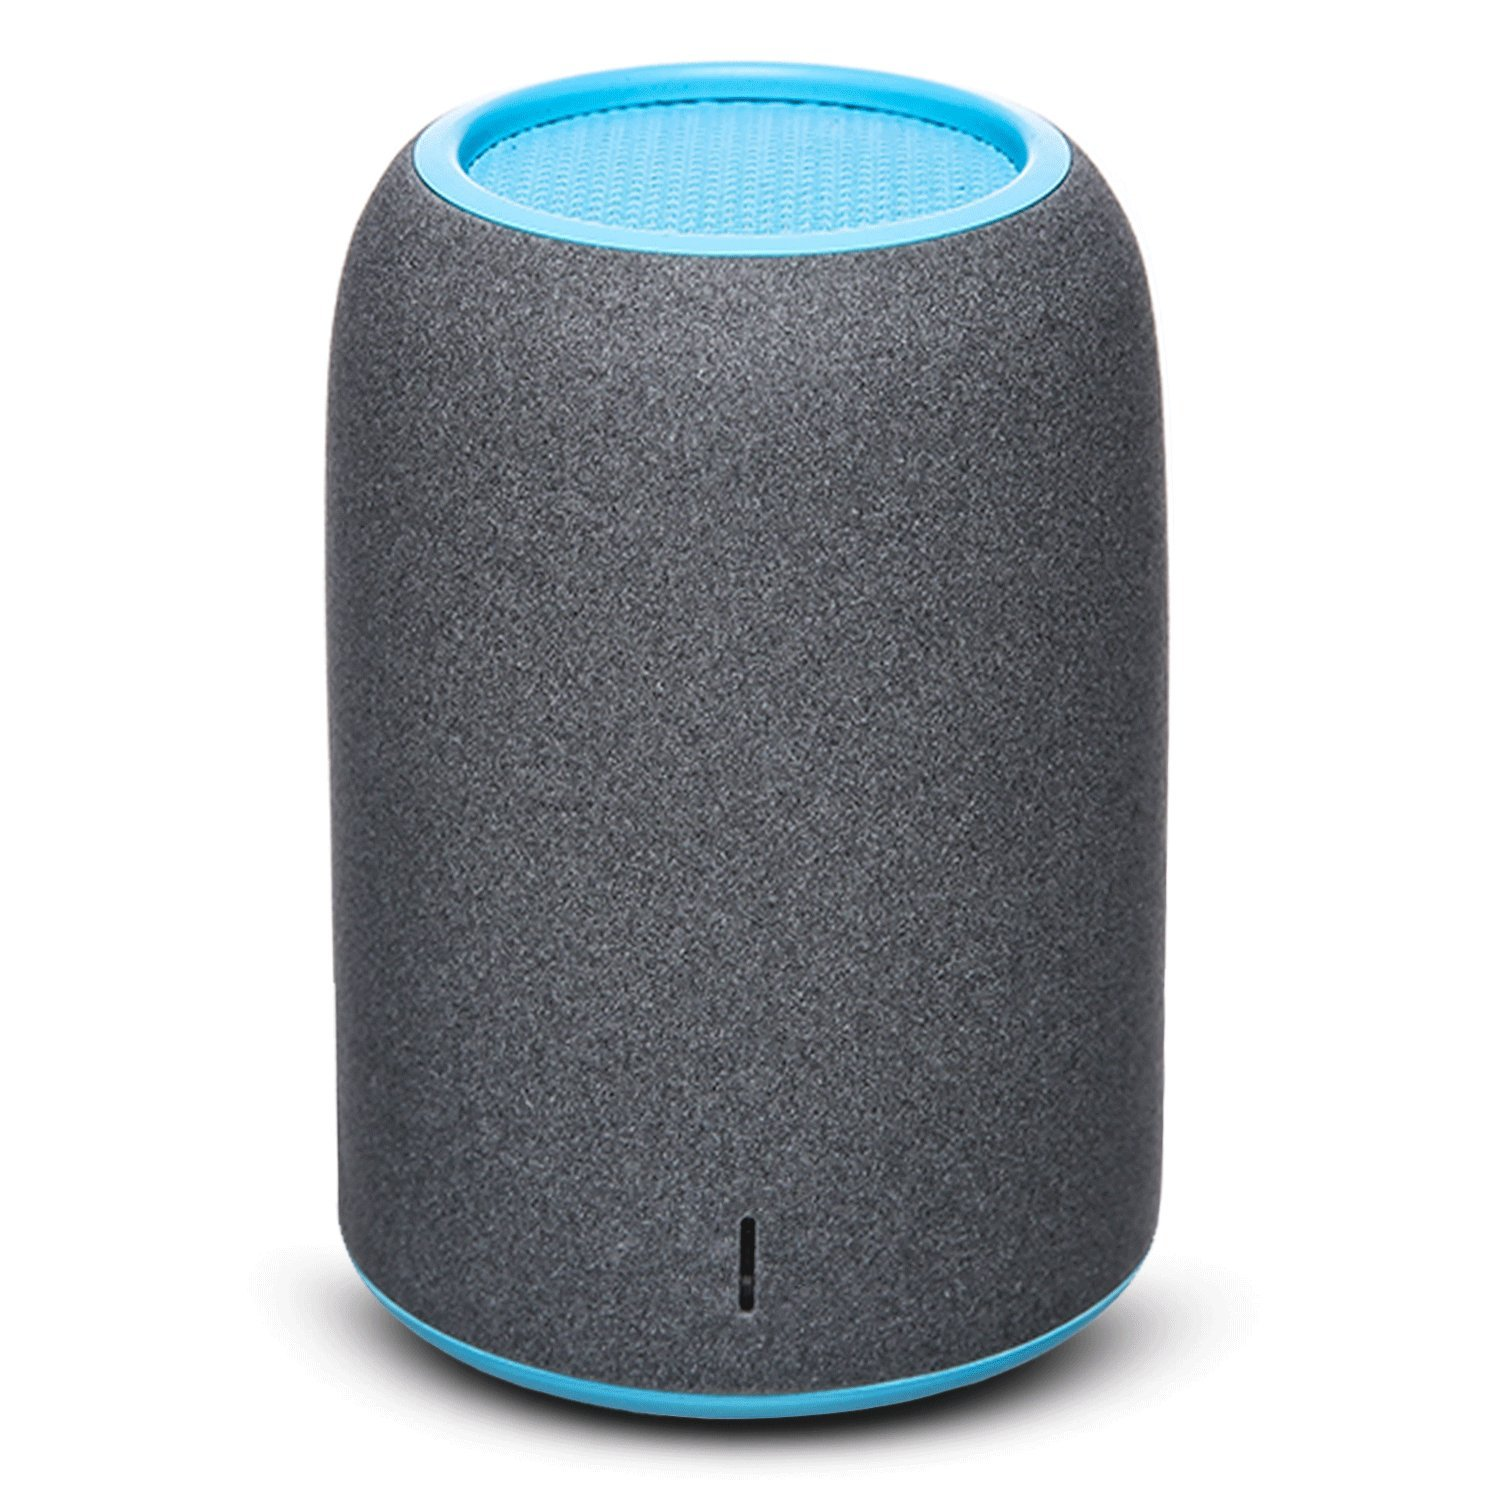 Portable Speakers, ZENBRE M4 Wireless Bluetooth Speakers for Laptop, Tablet, iPhone, Computer Speaker with Enhanced Bass Resonator (Blue) by ZENBRE (Image #2)